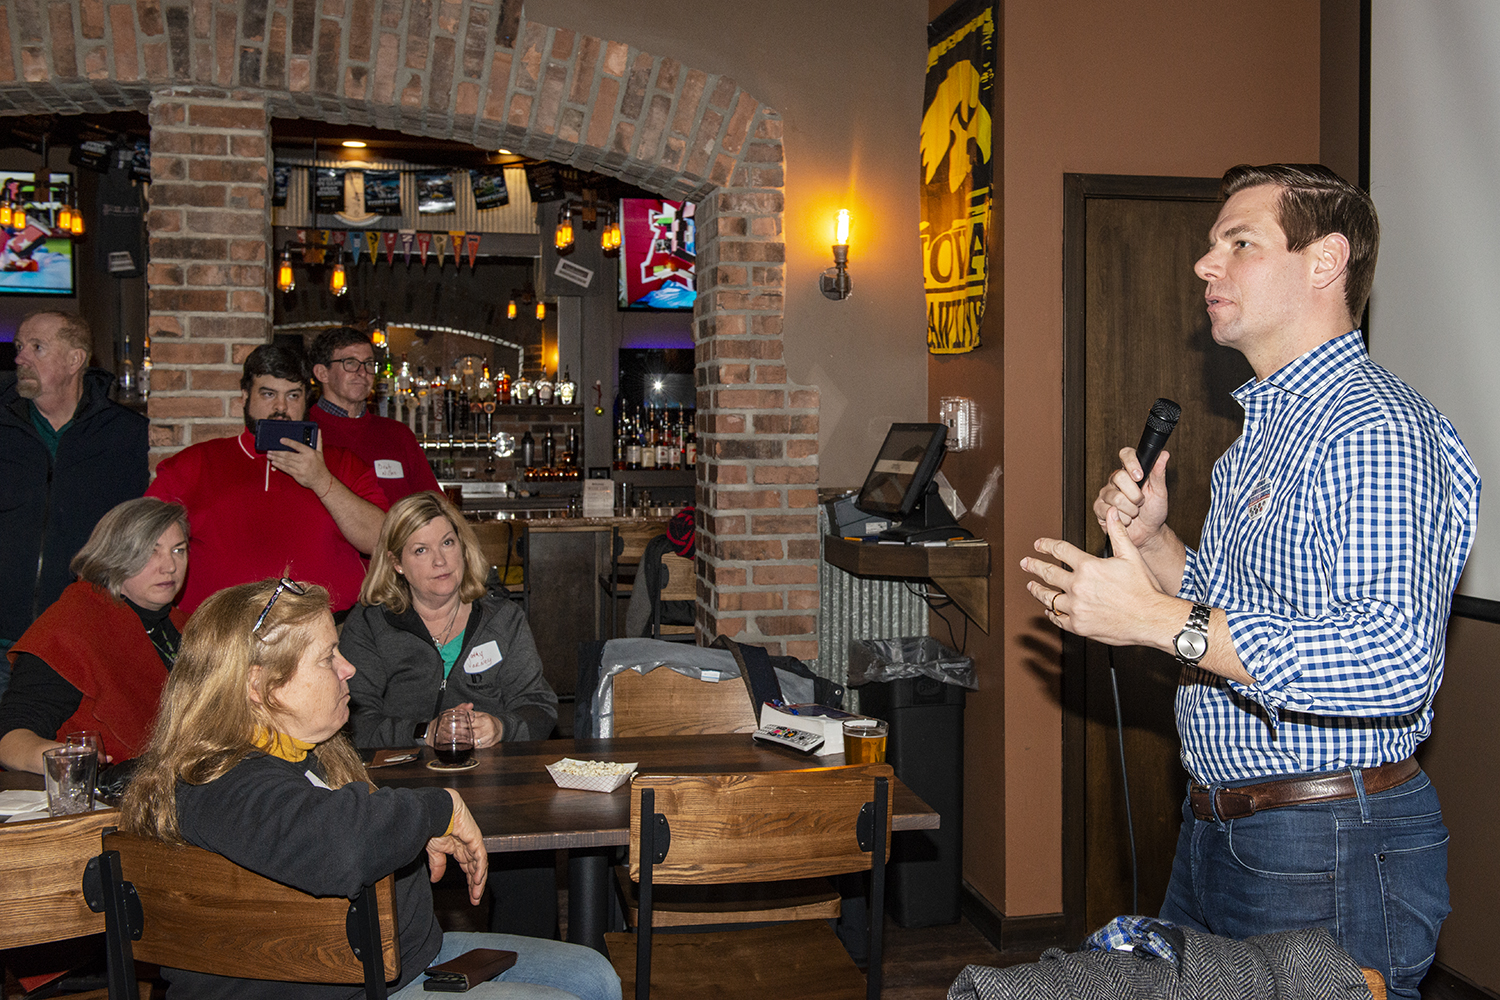 Rep. Eric Swalwell, D-Calif., speaks during a trip to Iowa at the Brick Alley Pub in Marion, Iowa on Sunday, Jan. 27, 2018. Rep. Swalwell is considering a bid for the 2020 Democratic Nomination for President.